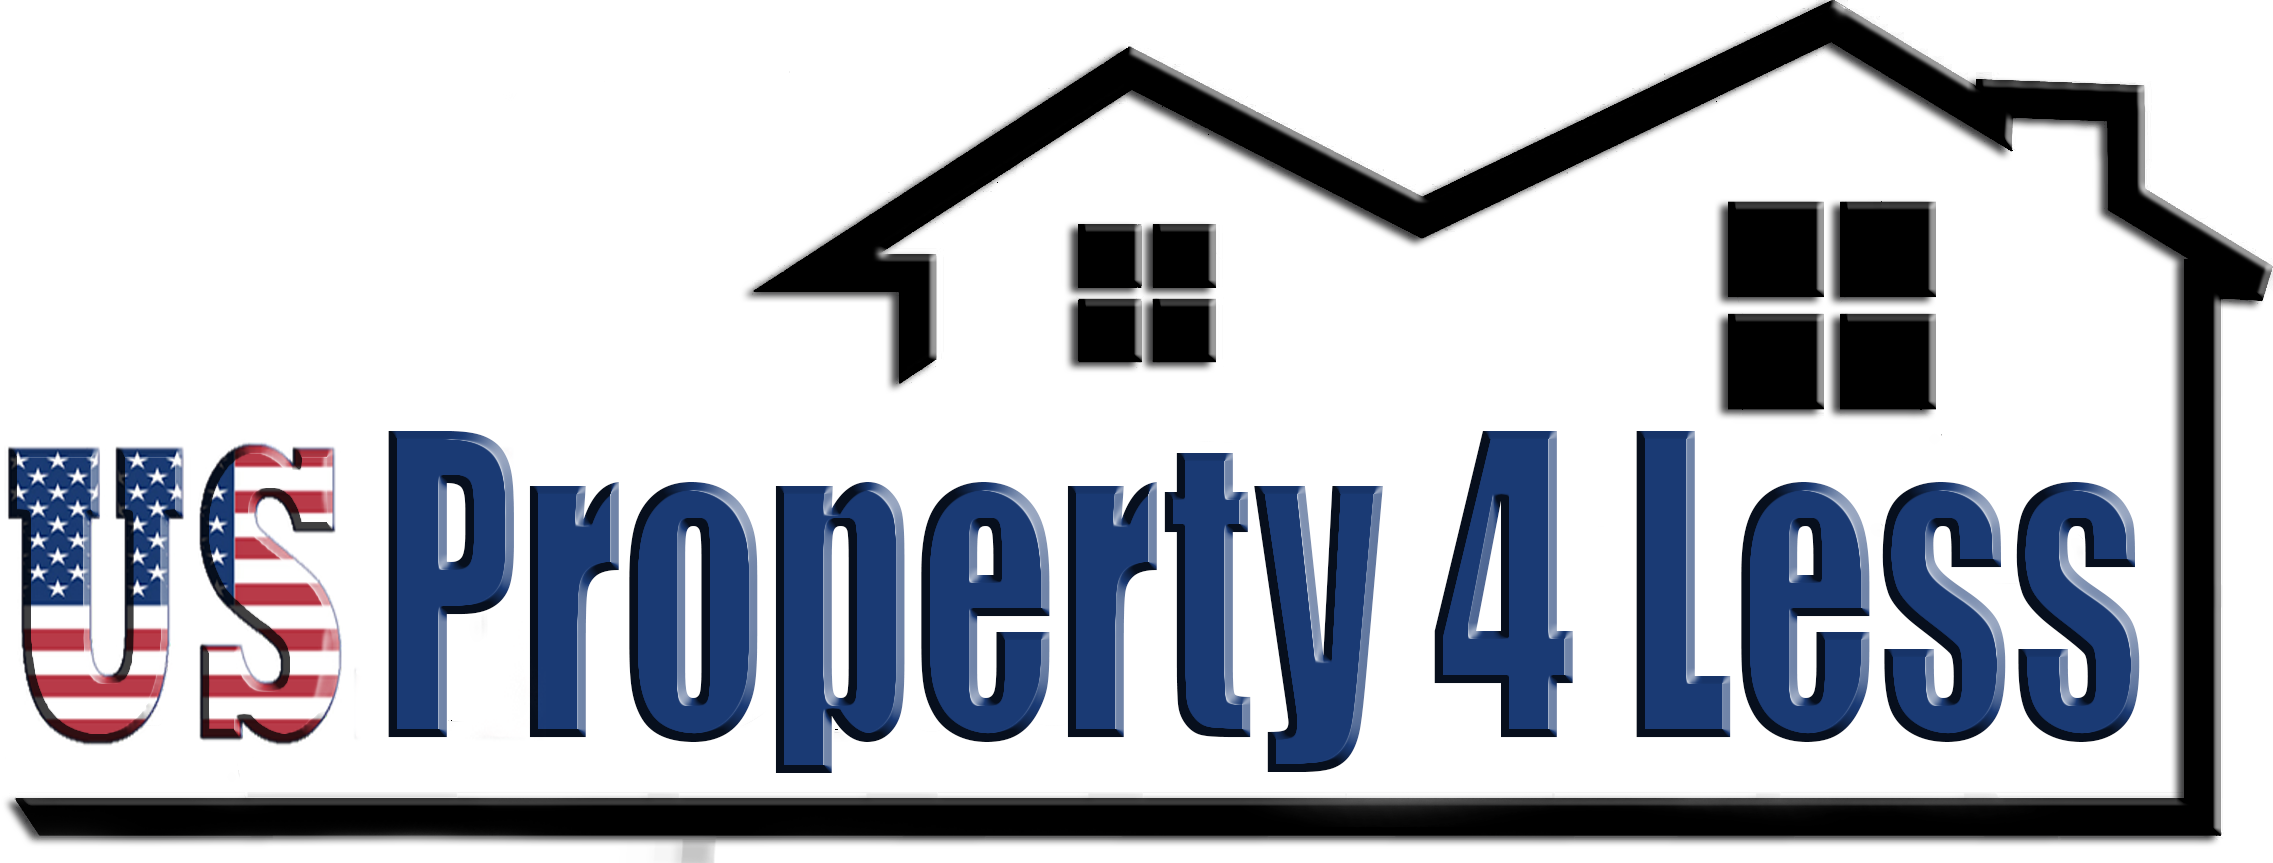 US Property For Less